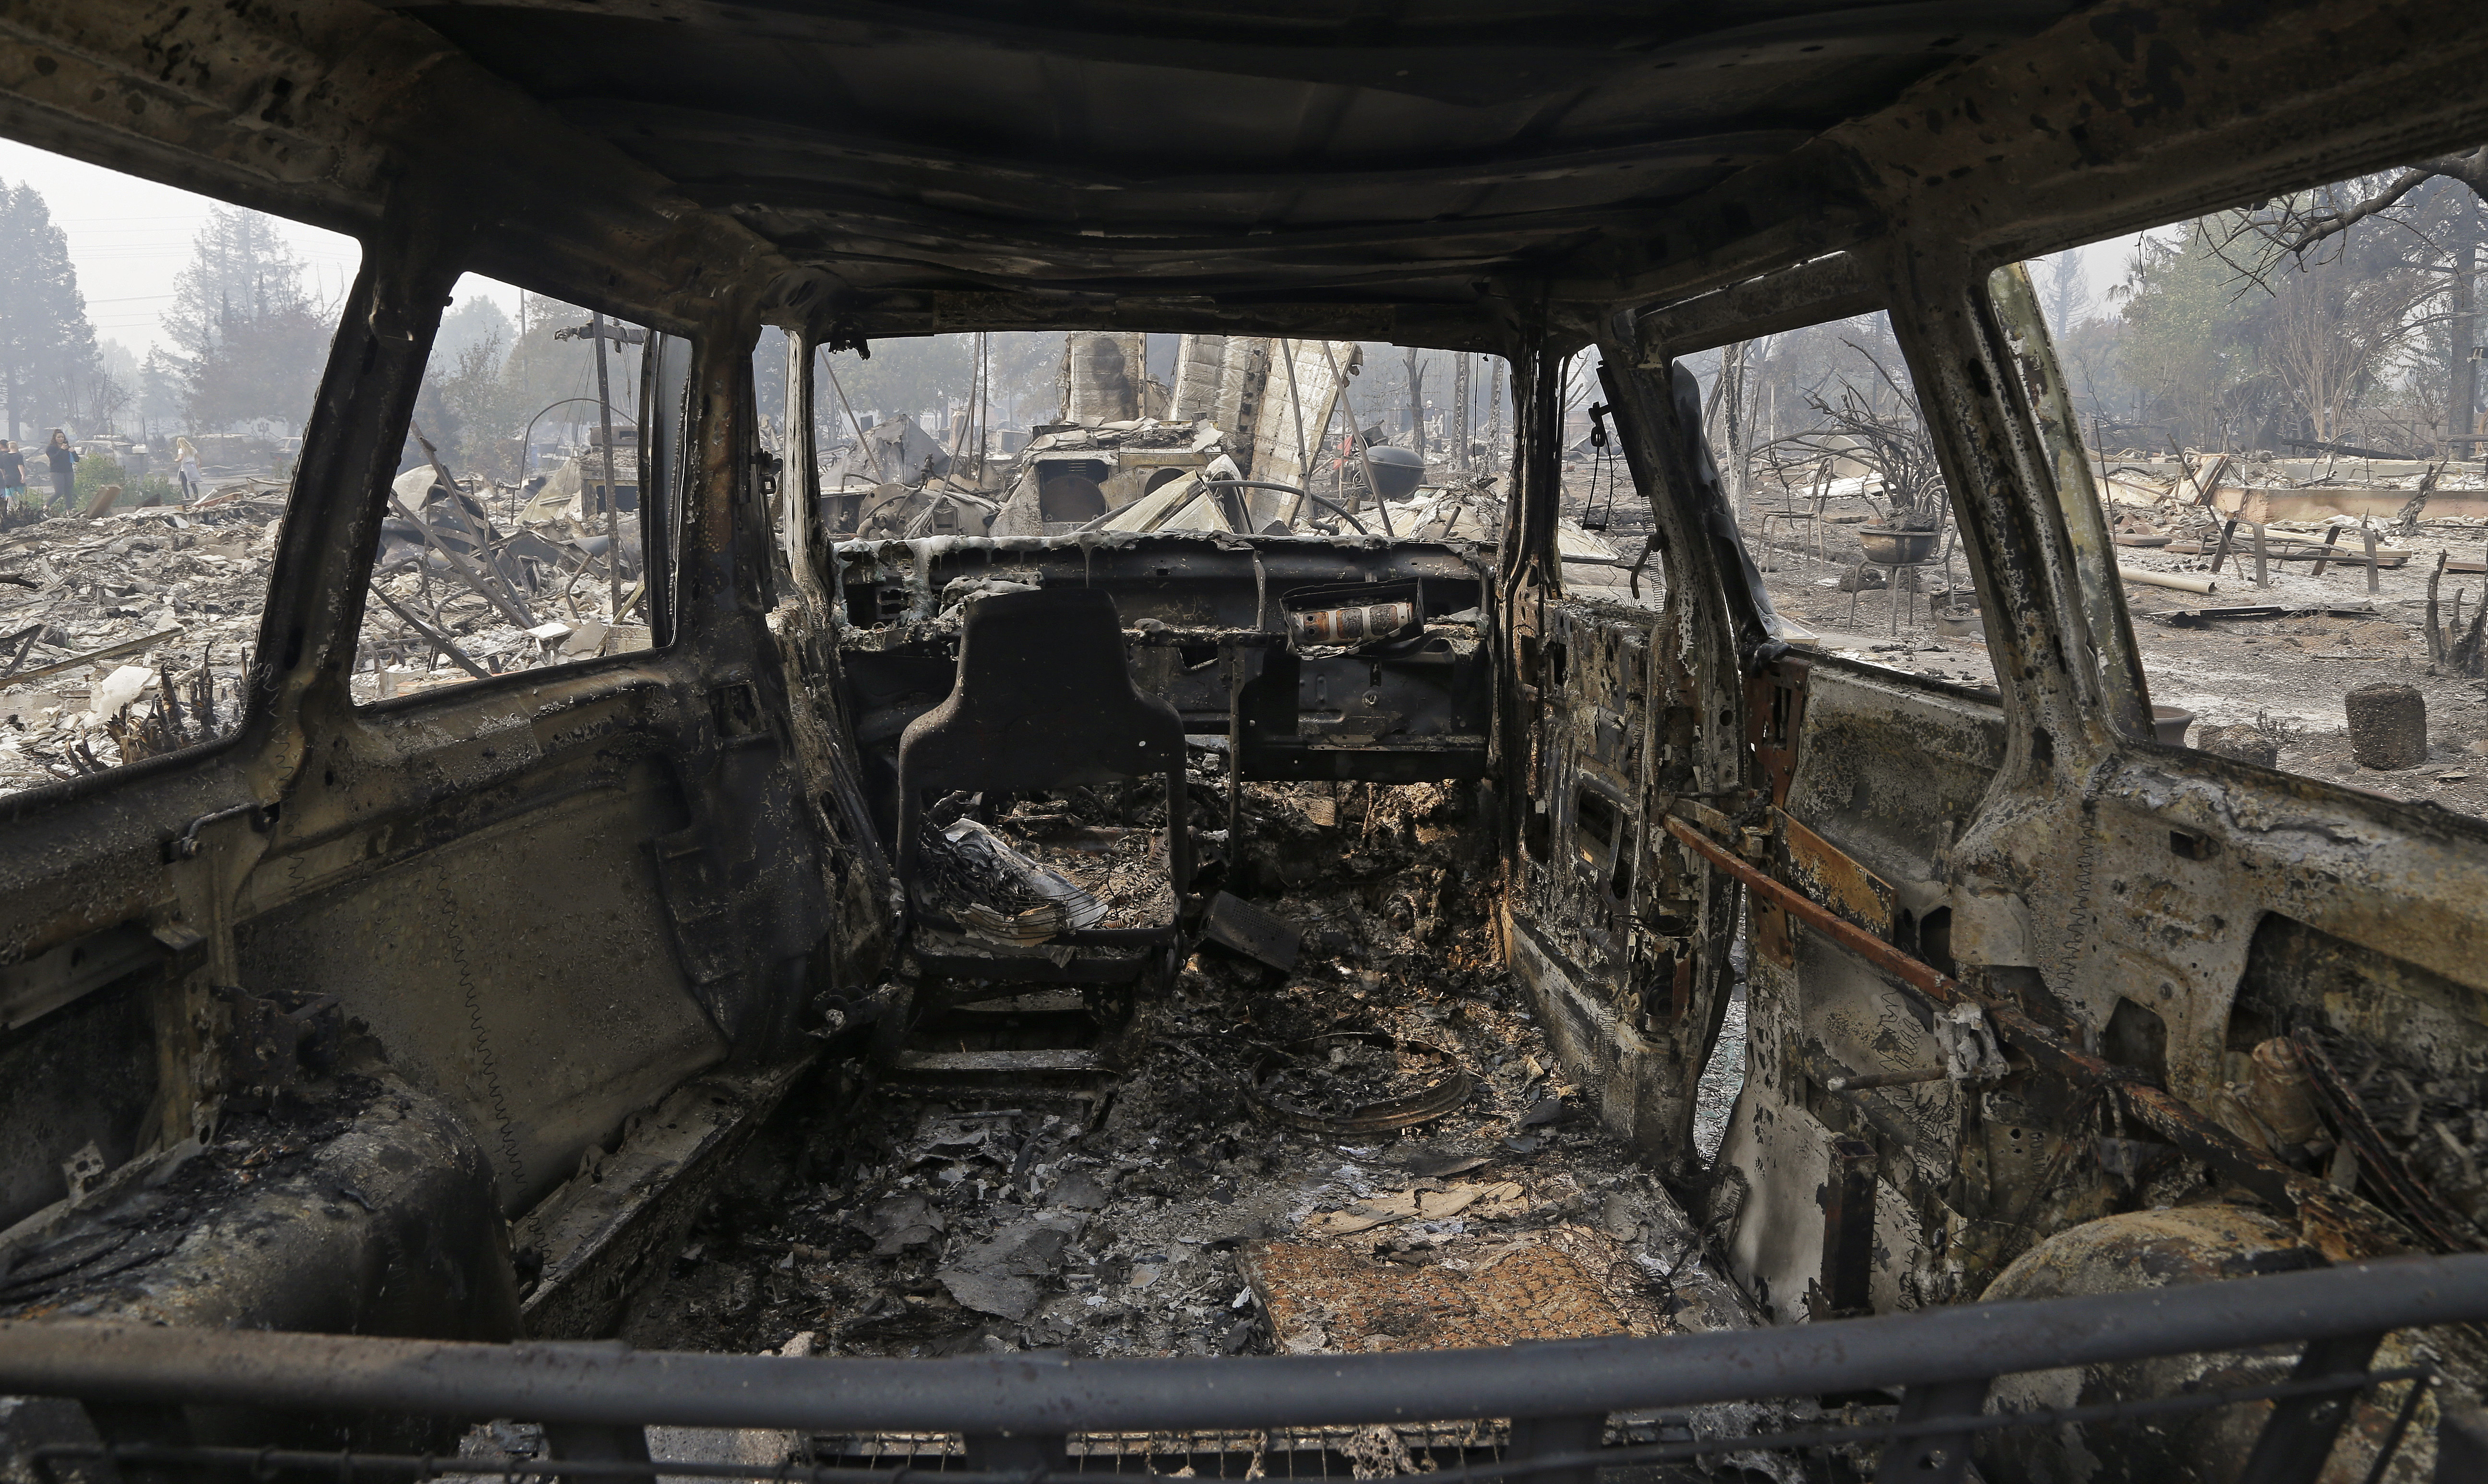 <div class='meta'><div class='origin-logo' data-origin='none'></div><span class='caption-text' data-credit='Ben Margot/AP Photo'>View from inside a parked car destroyed by fire in the Coffey Park area of Santa Rosa, Calif., on Tuesday, Oct. 10, 2017.</span></div>